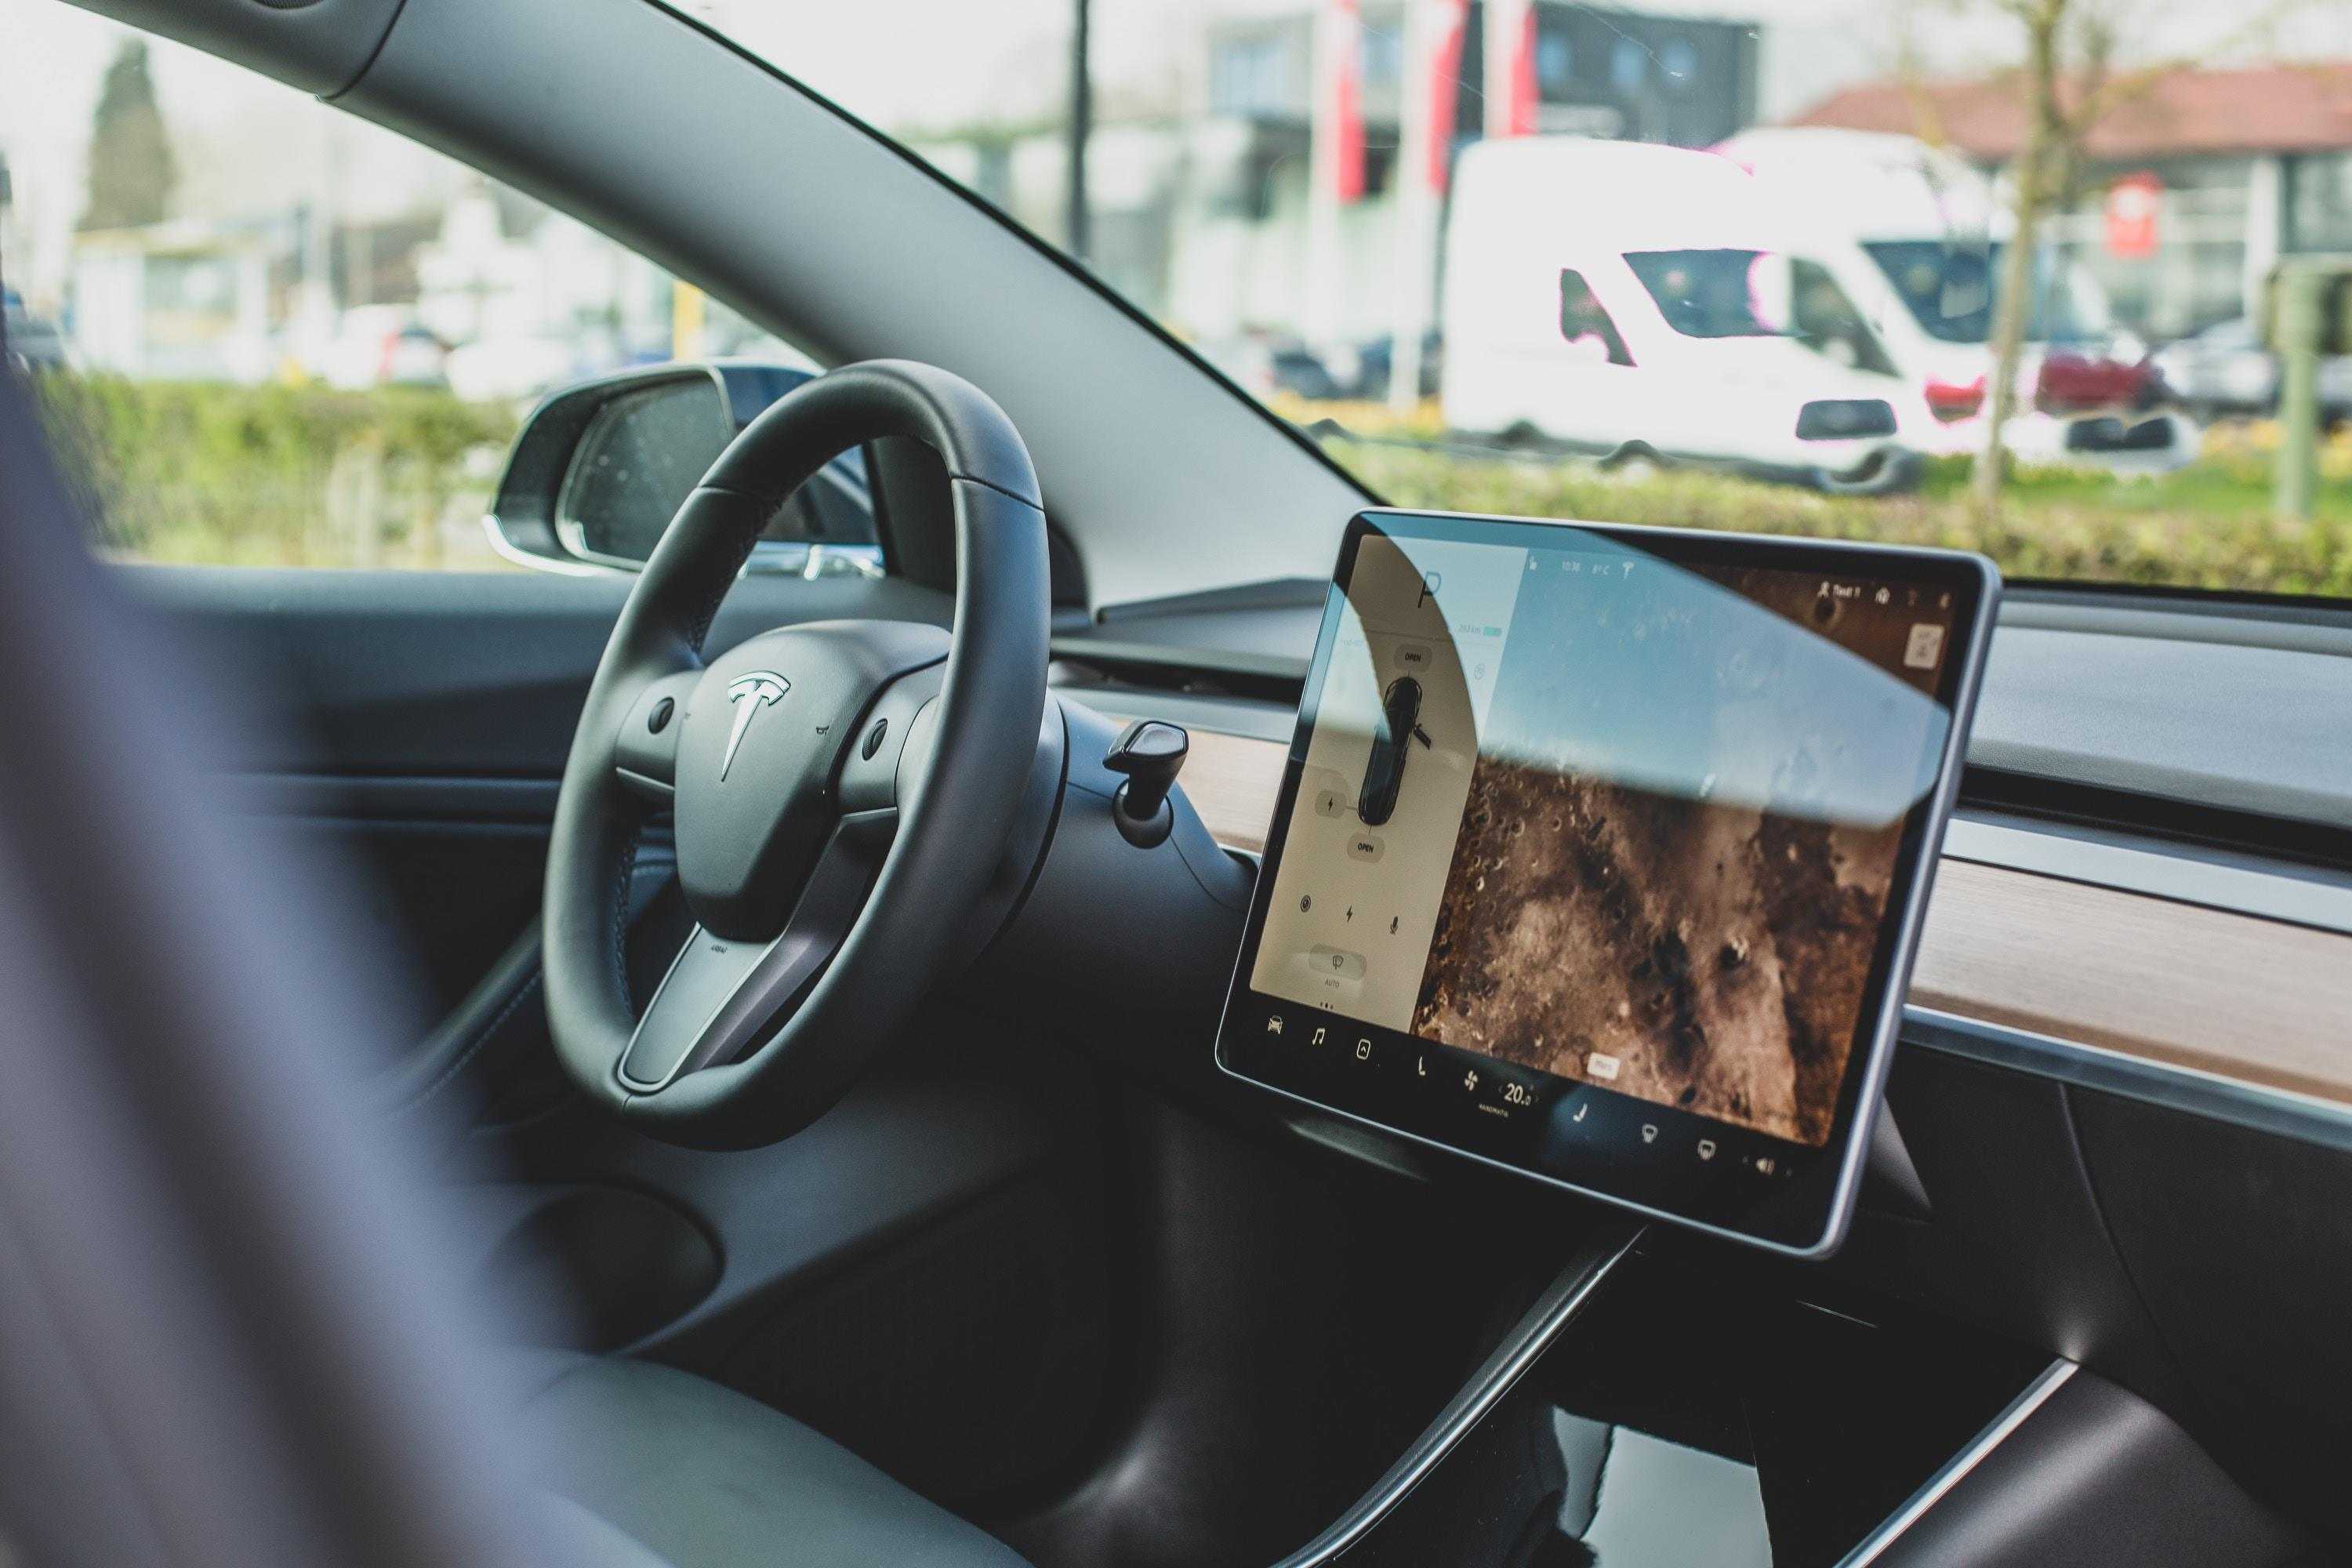 A fresh challenge for publishers - driverless cars | News | FIPP.com